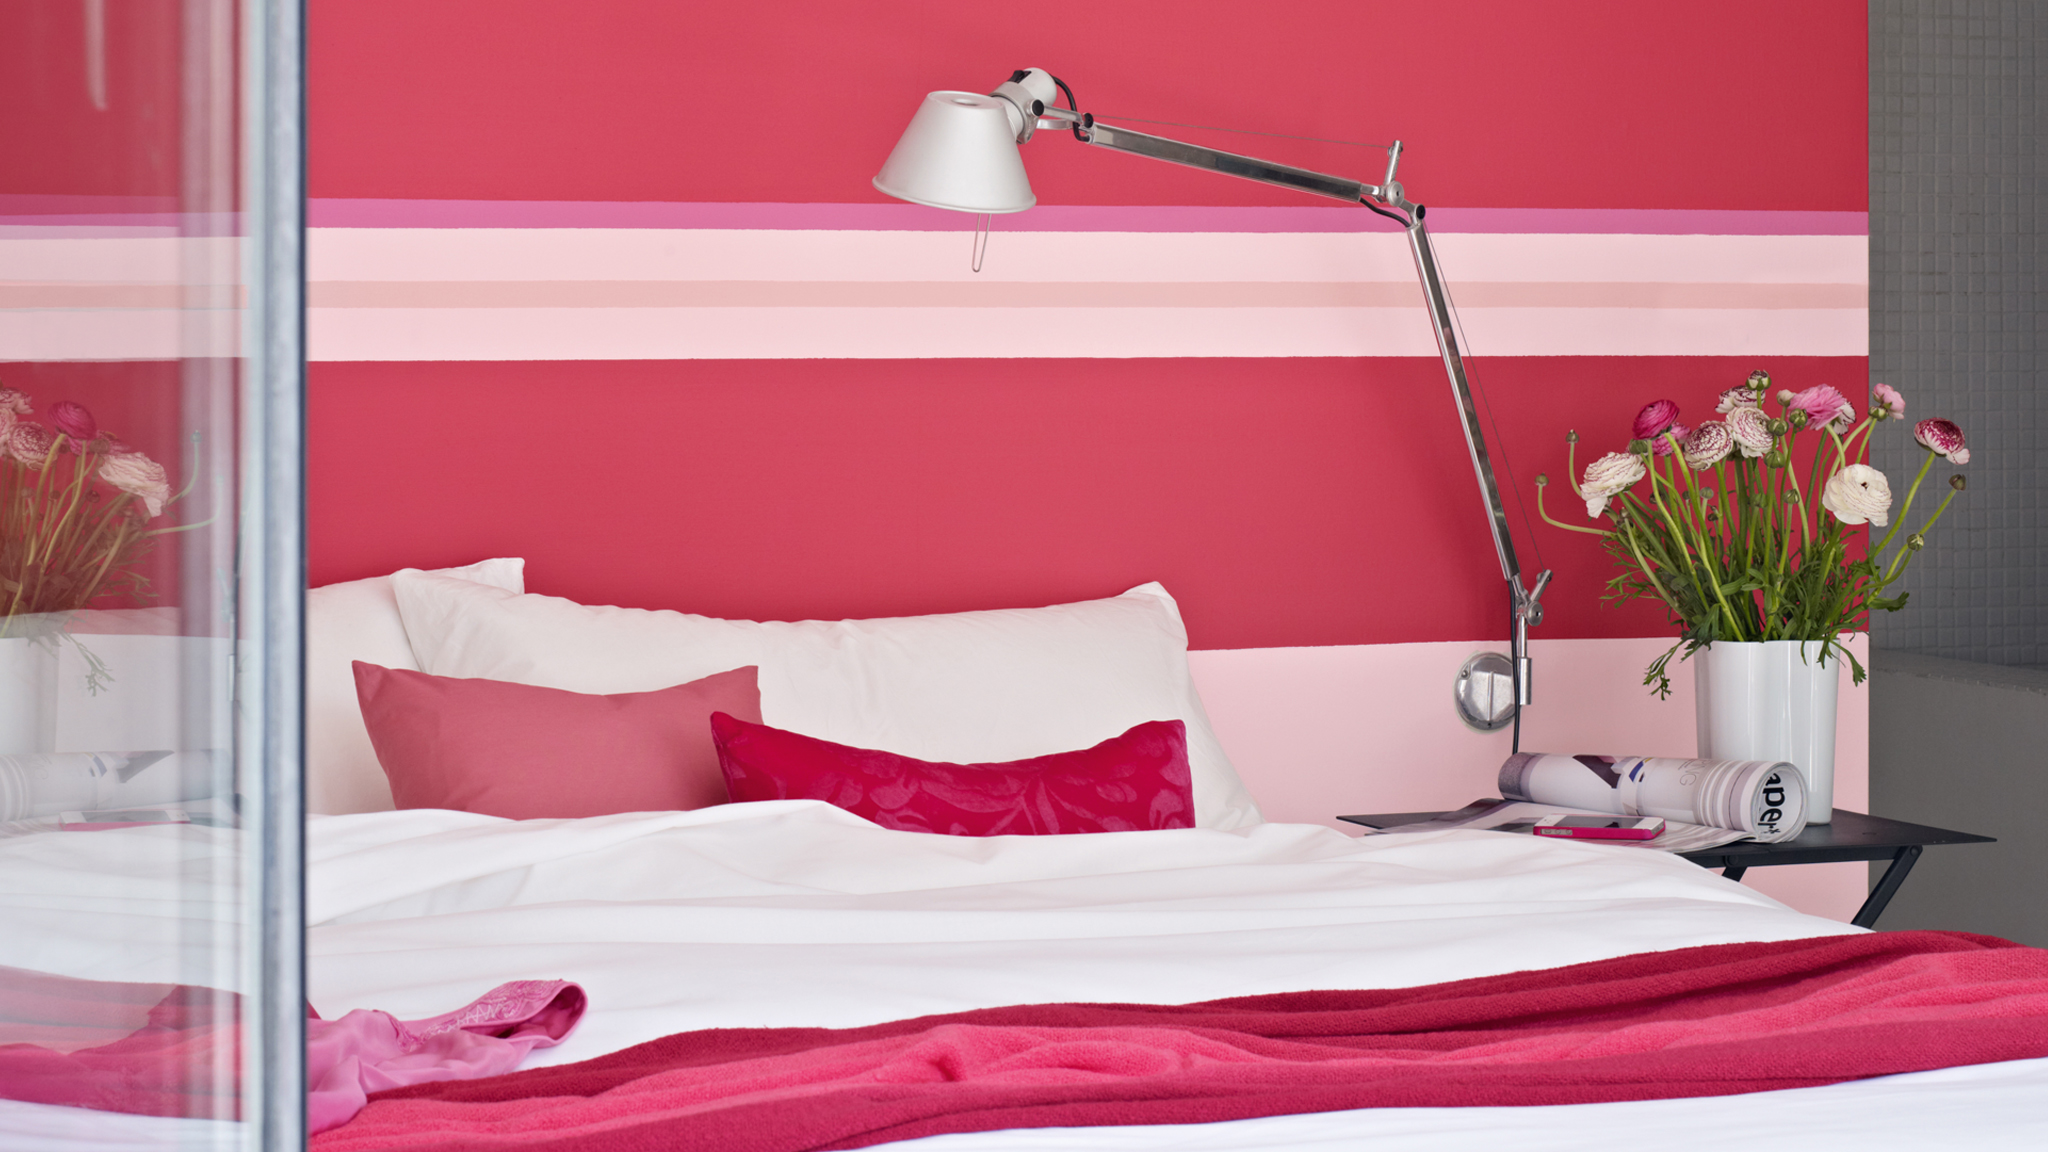 Choose deep, berry tones in a bedroom - they are subdued enough to be restful but rich enough to make an impact